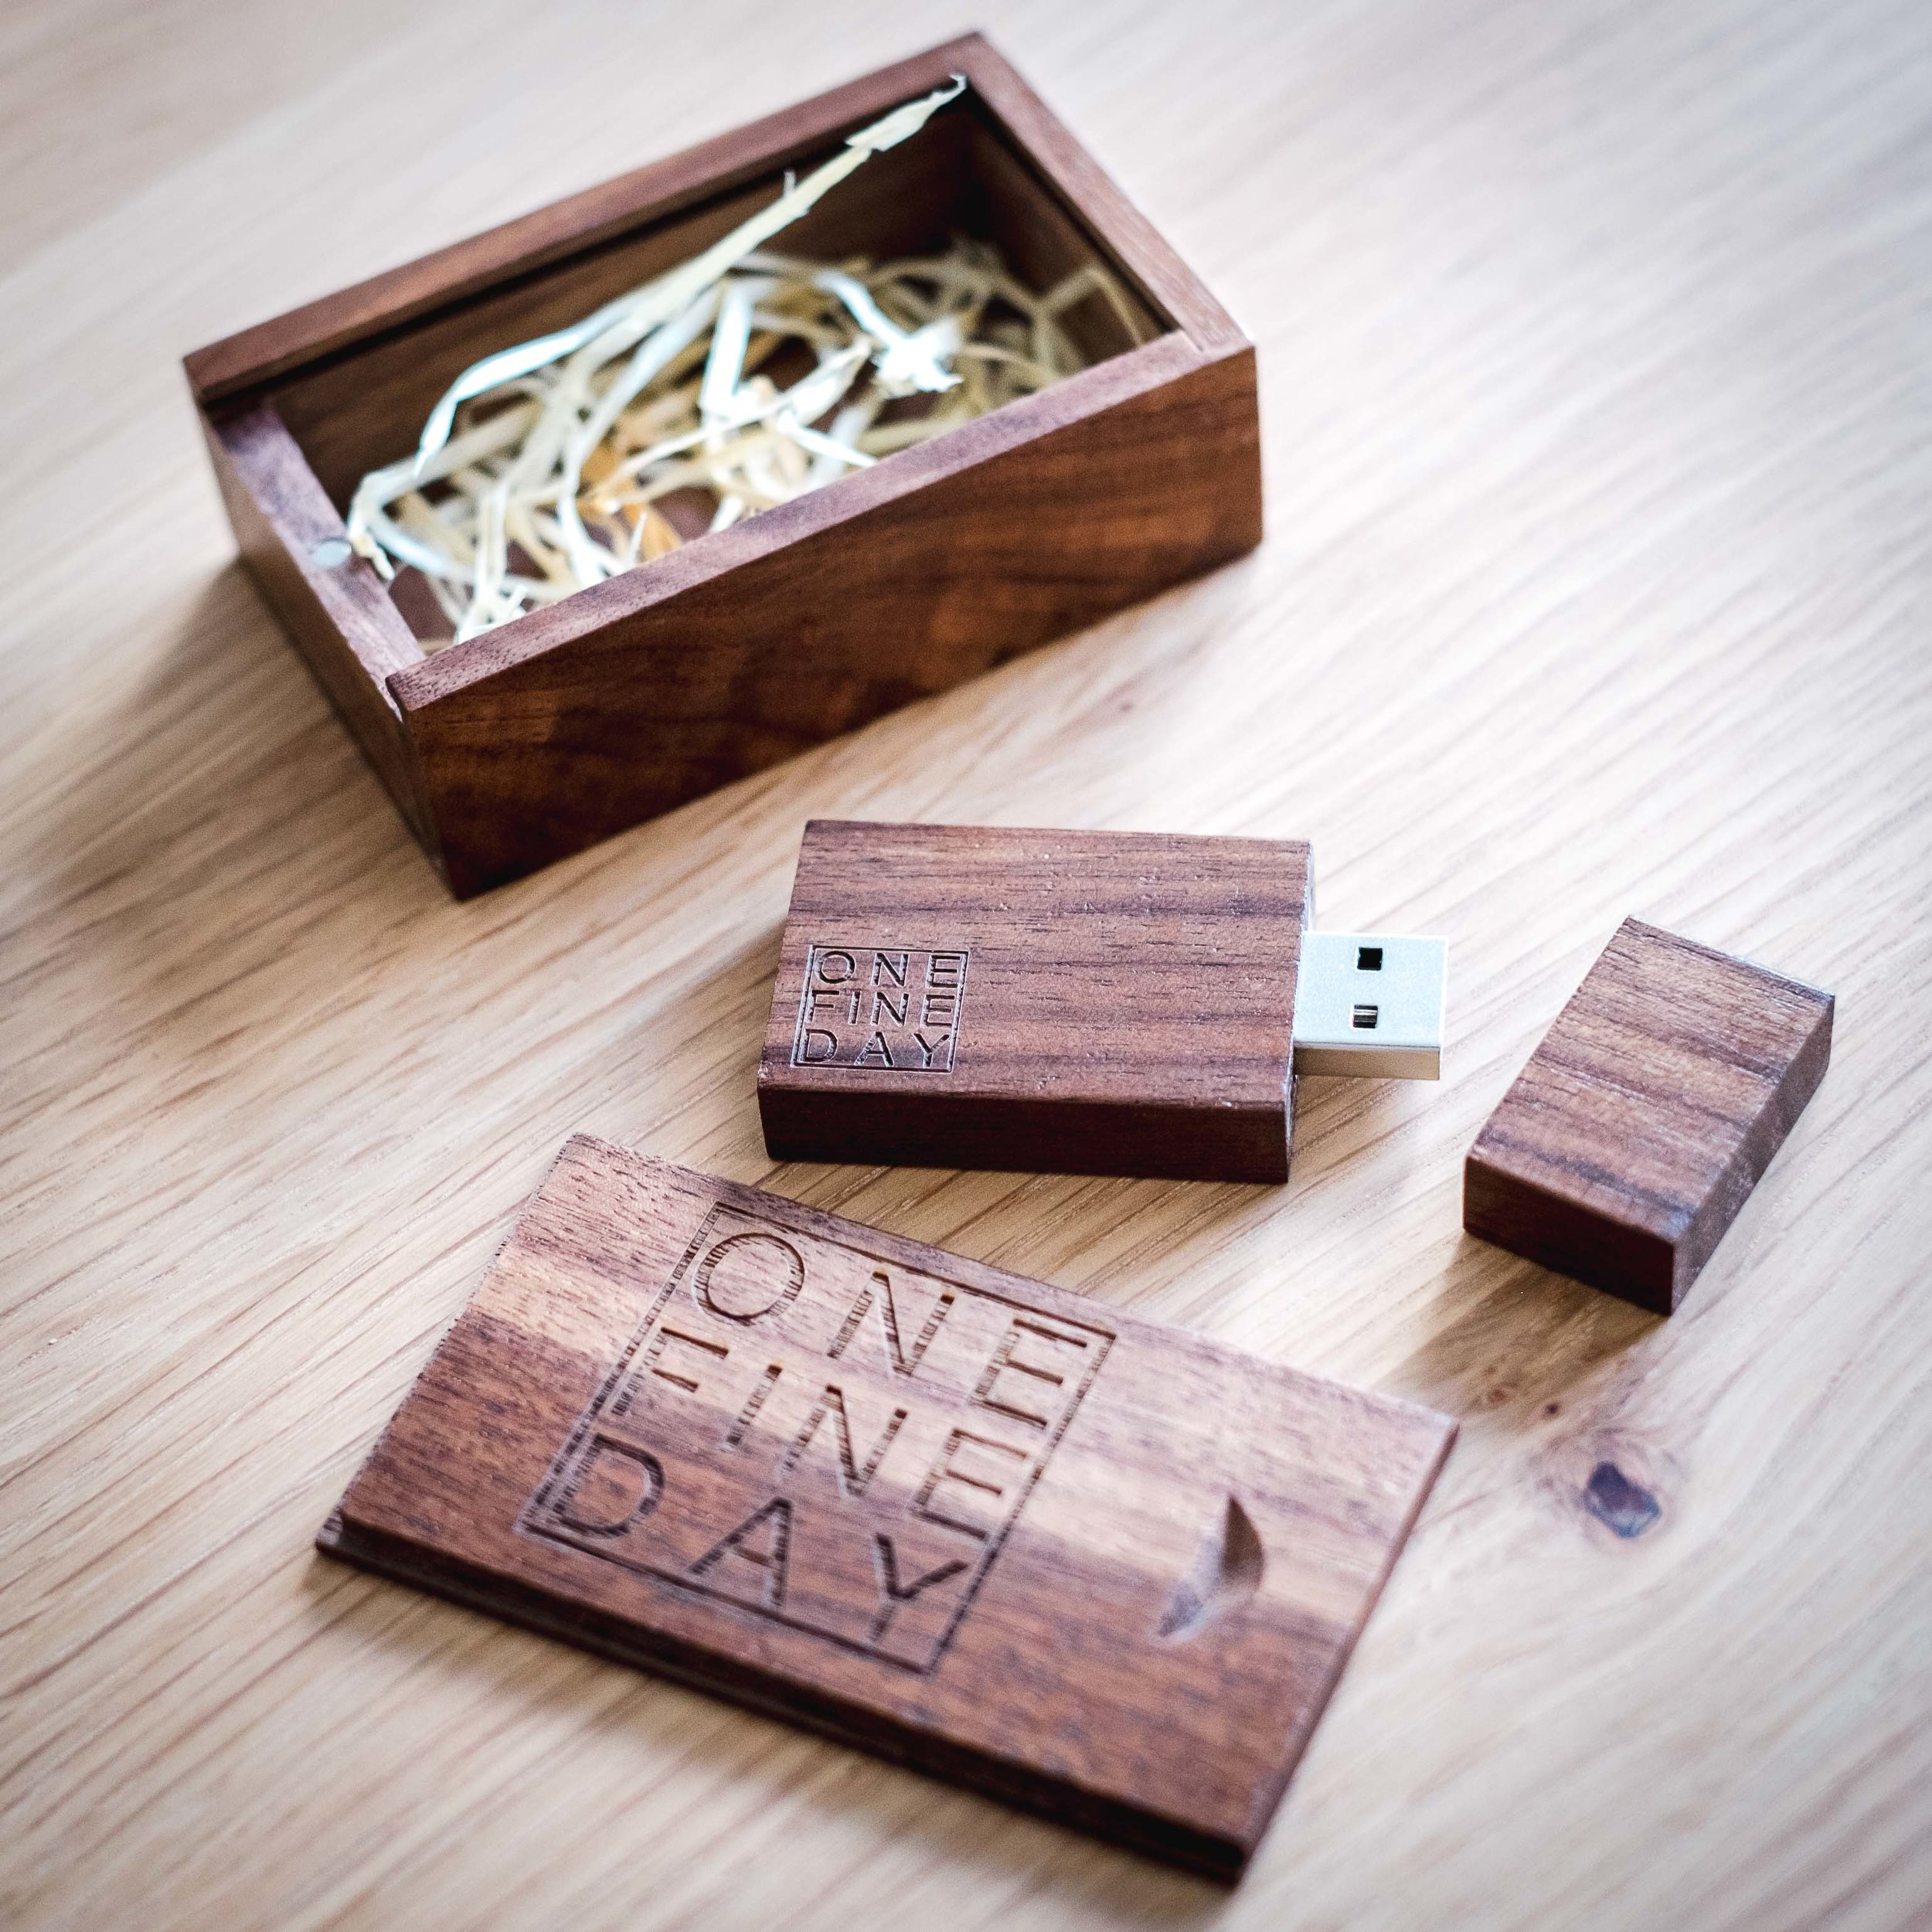 One Fine Day USB.jpg